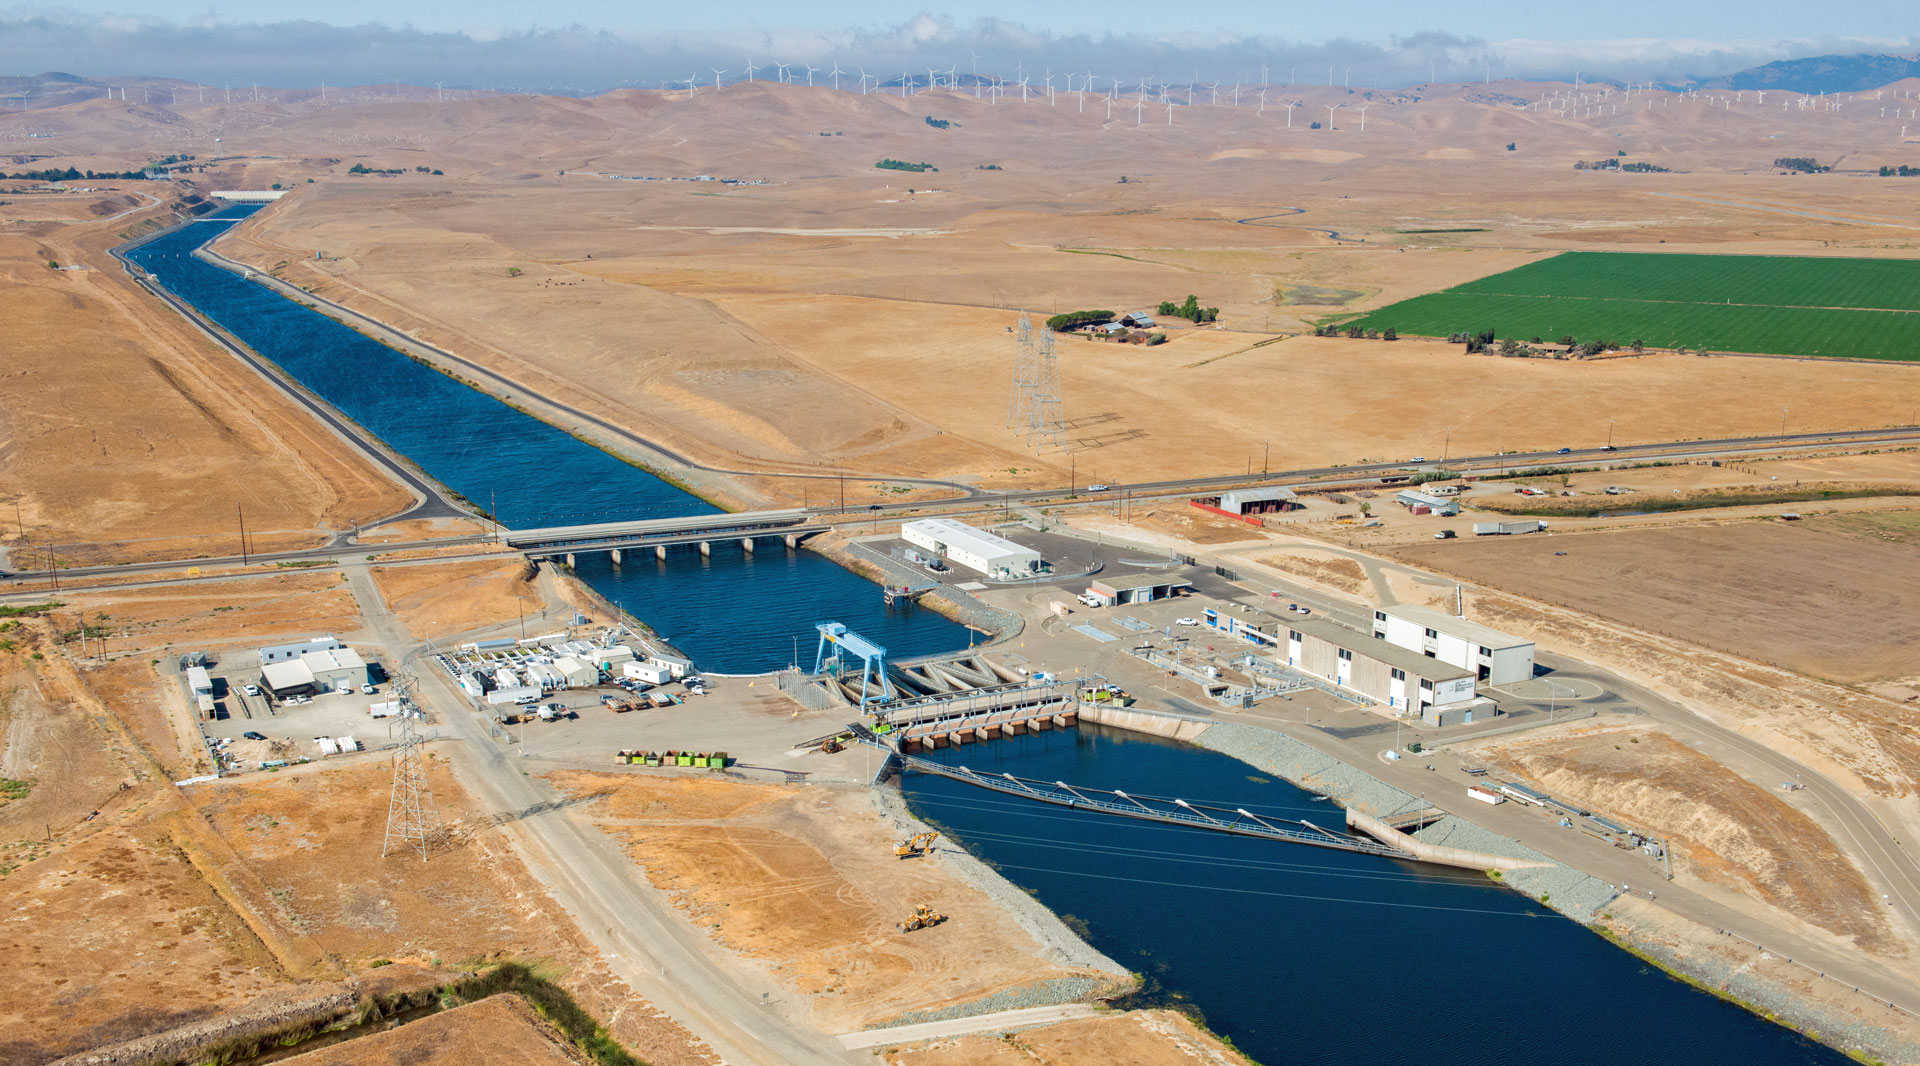 The Banks Pumping plant draws water out of the Delta and sends it hundreds of miles south.